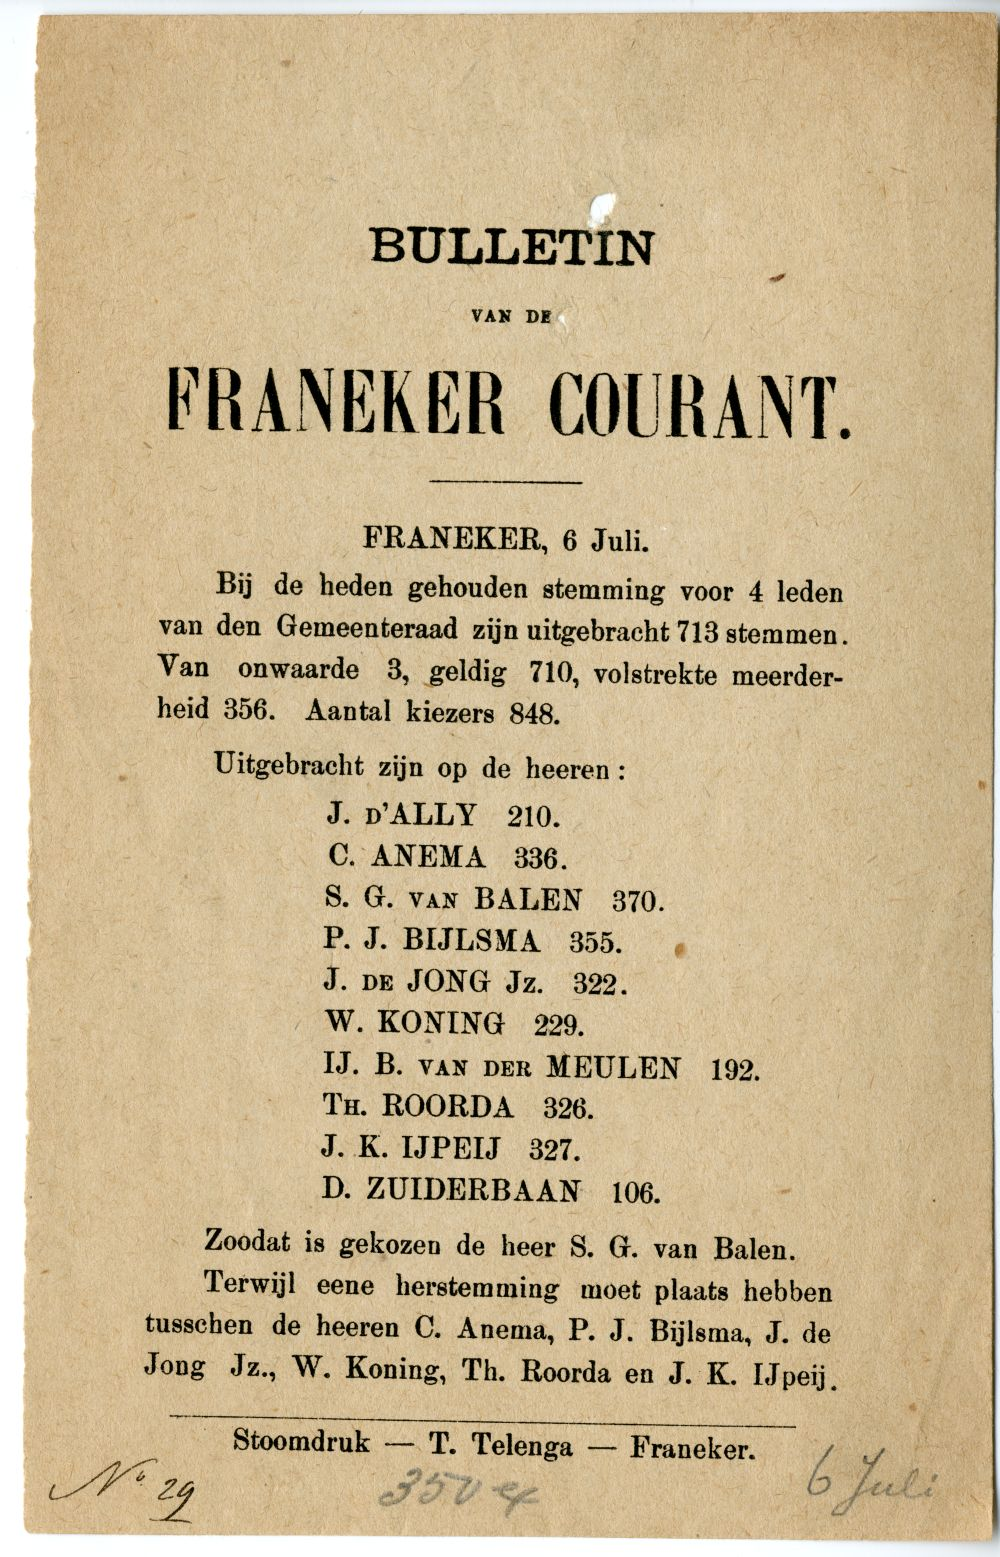 Document van de Franeker Courant